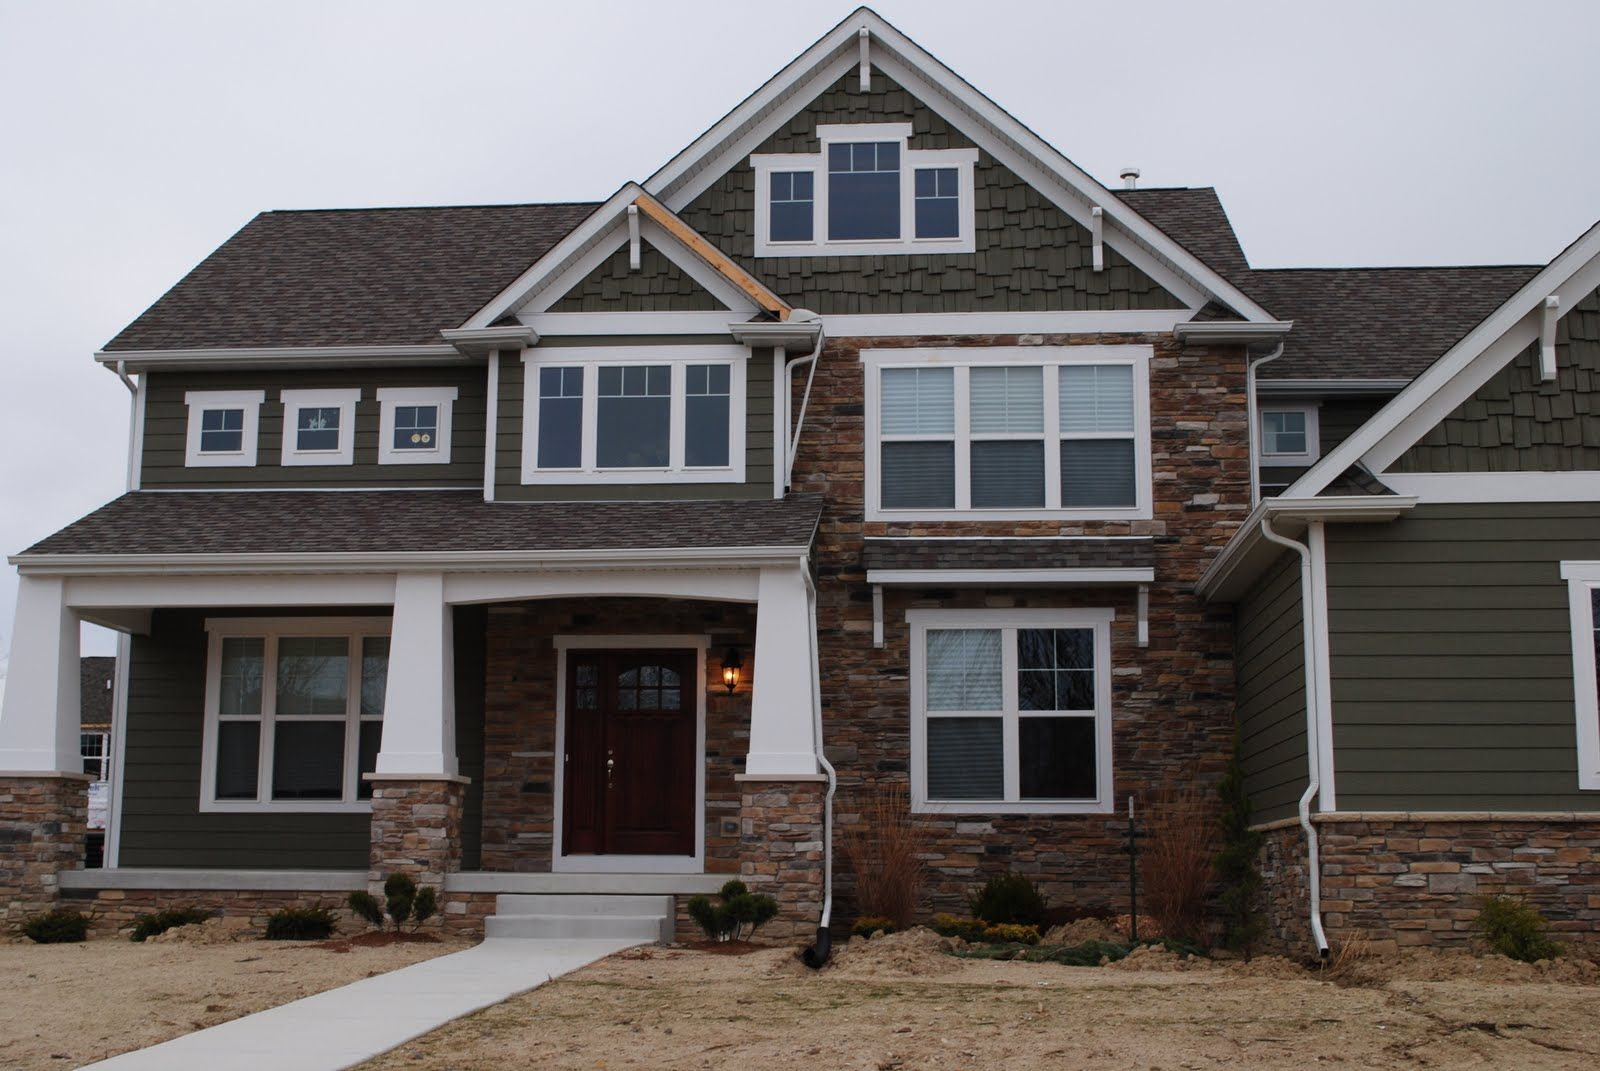 Brick And Stone Exterior Combinations Vinyl Siding And Stone Combination We Like The Dark Gray